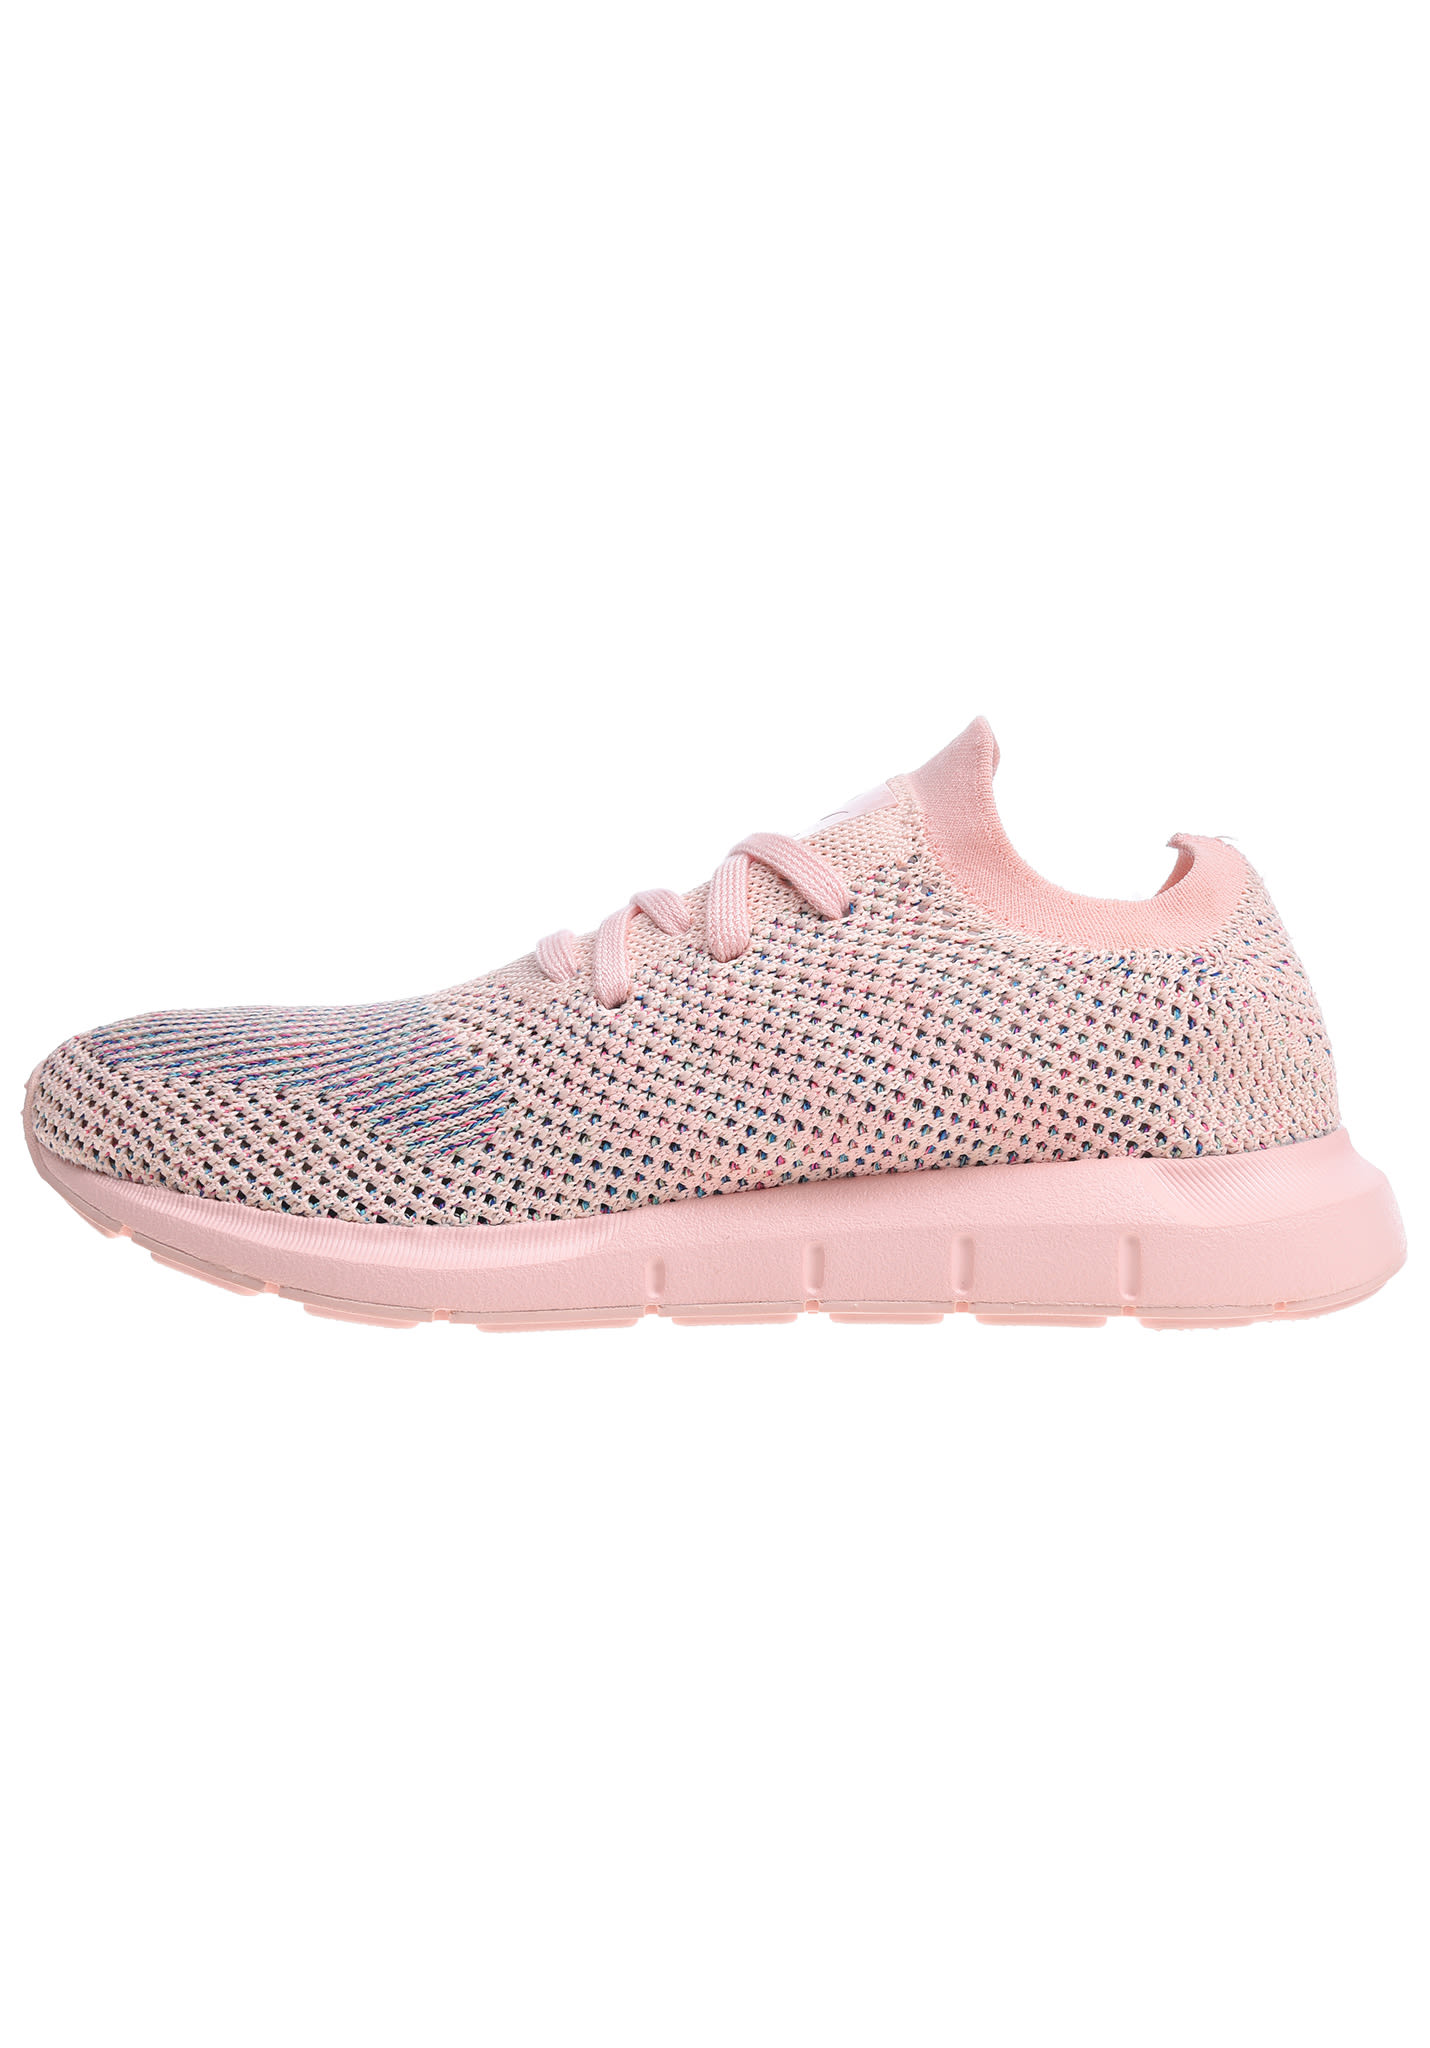 78e04321adf ADIDAS ORIGINALS Swift Run Primeknit - Sneakers for Women - Pink - Planet  Sports